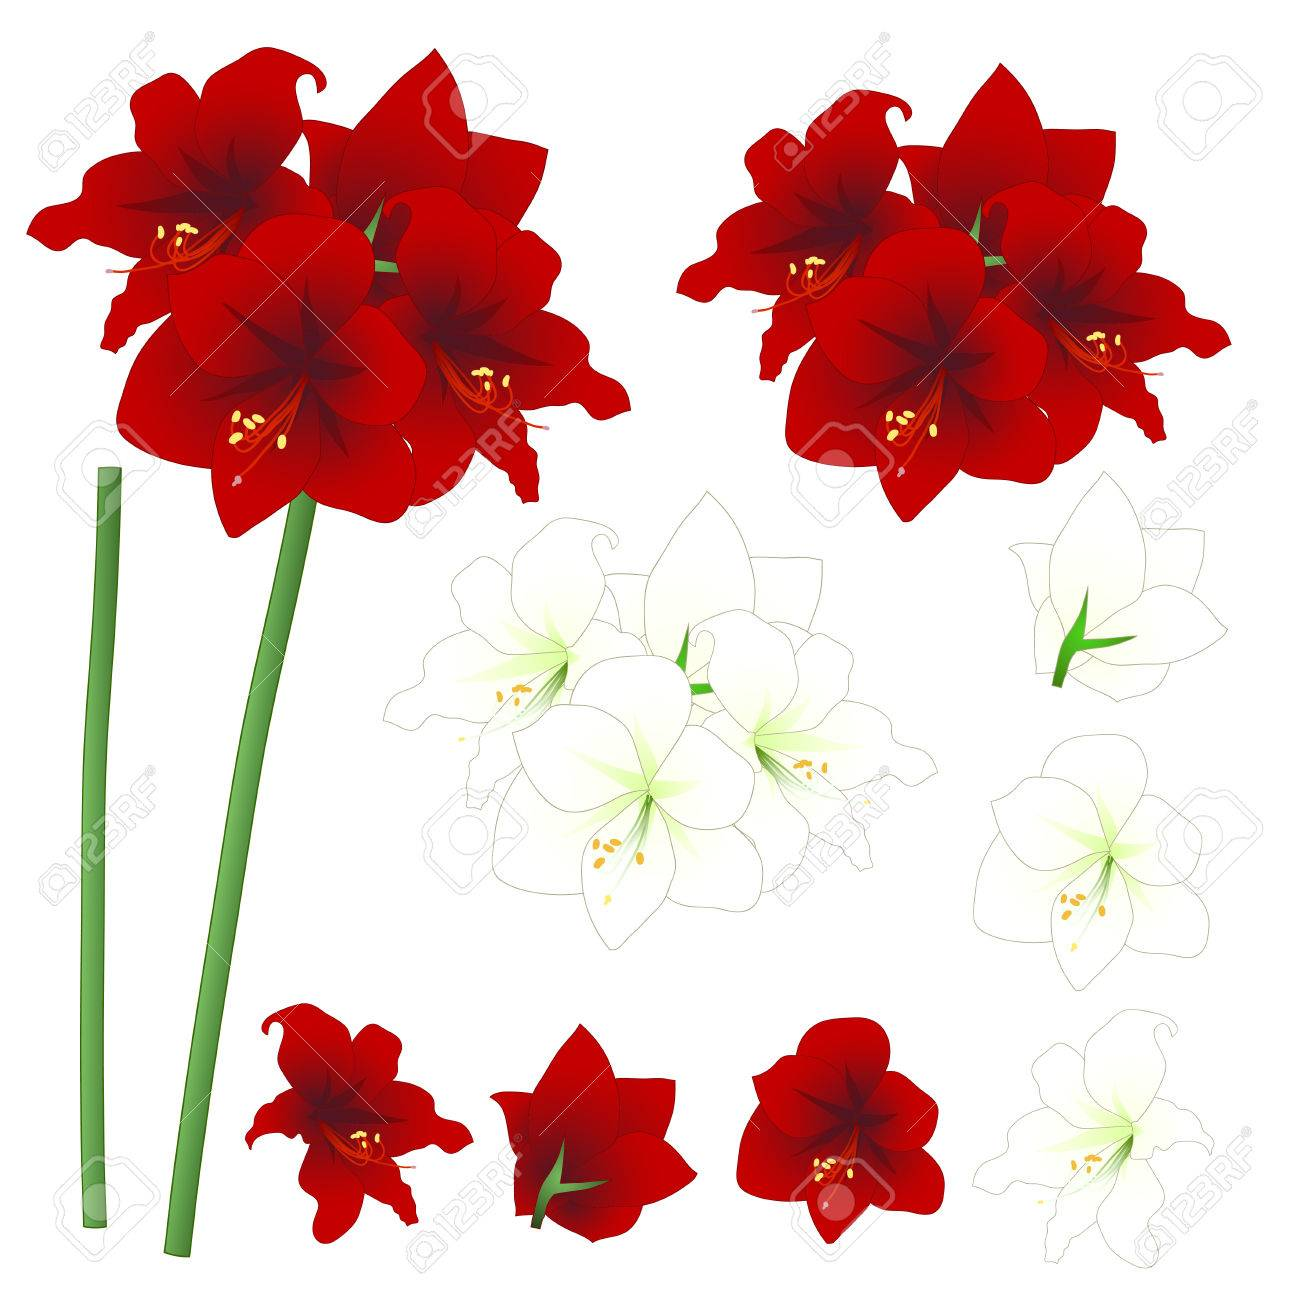 Red And White Amaryllis Hippeastrum Christmas Flower Vector